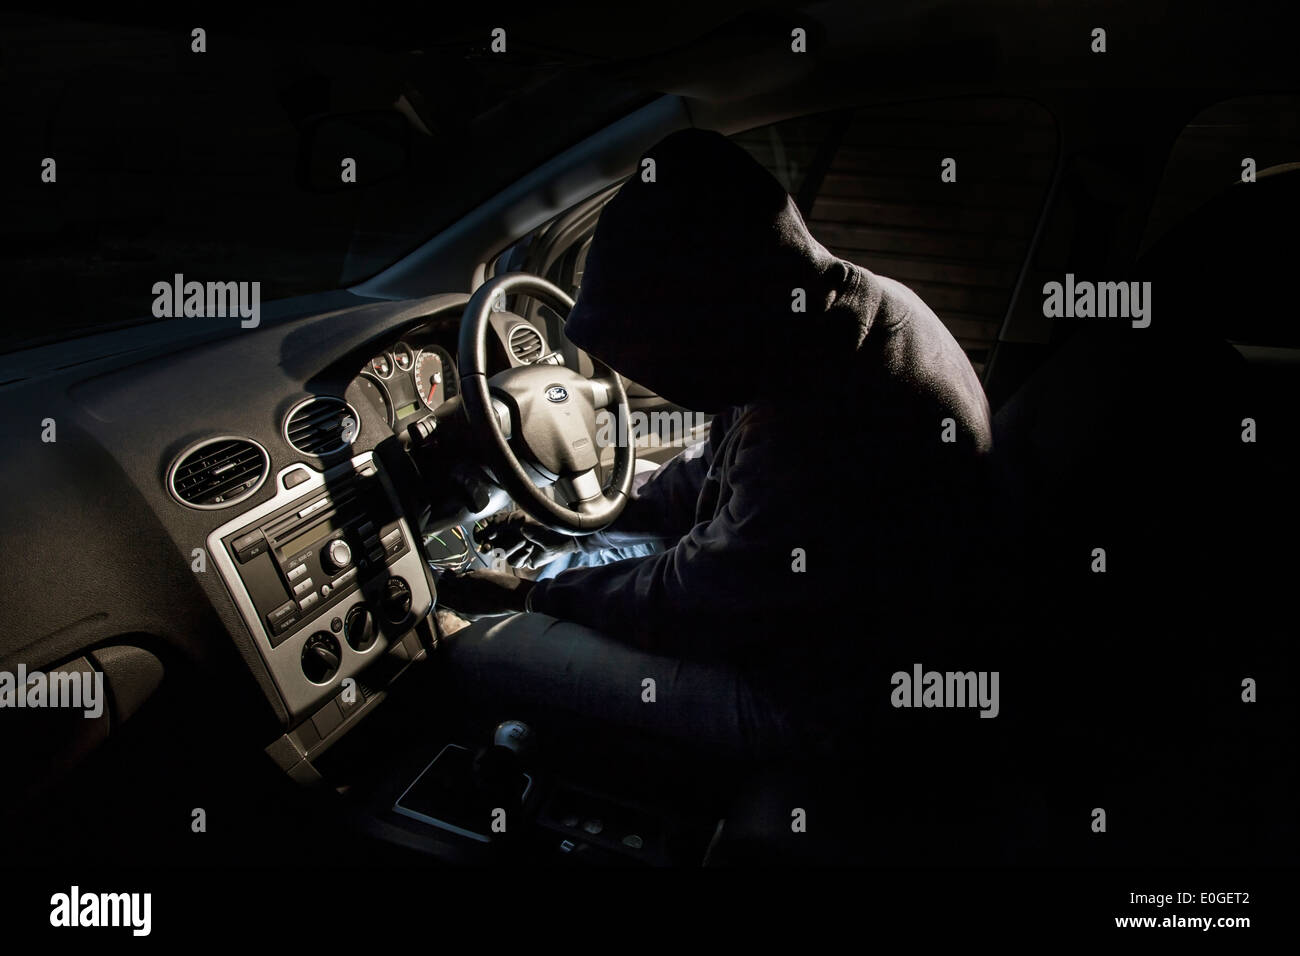 hight resolution of thief hot wiring a car stock image